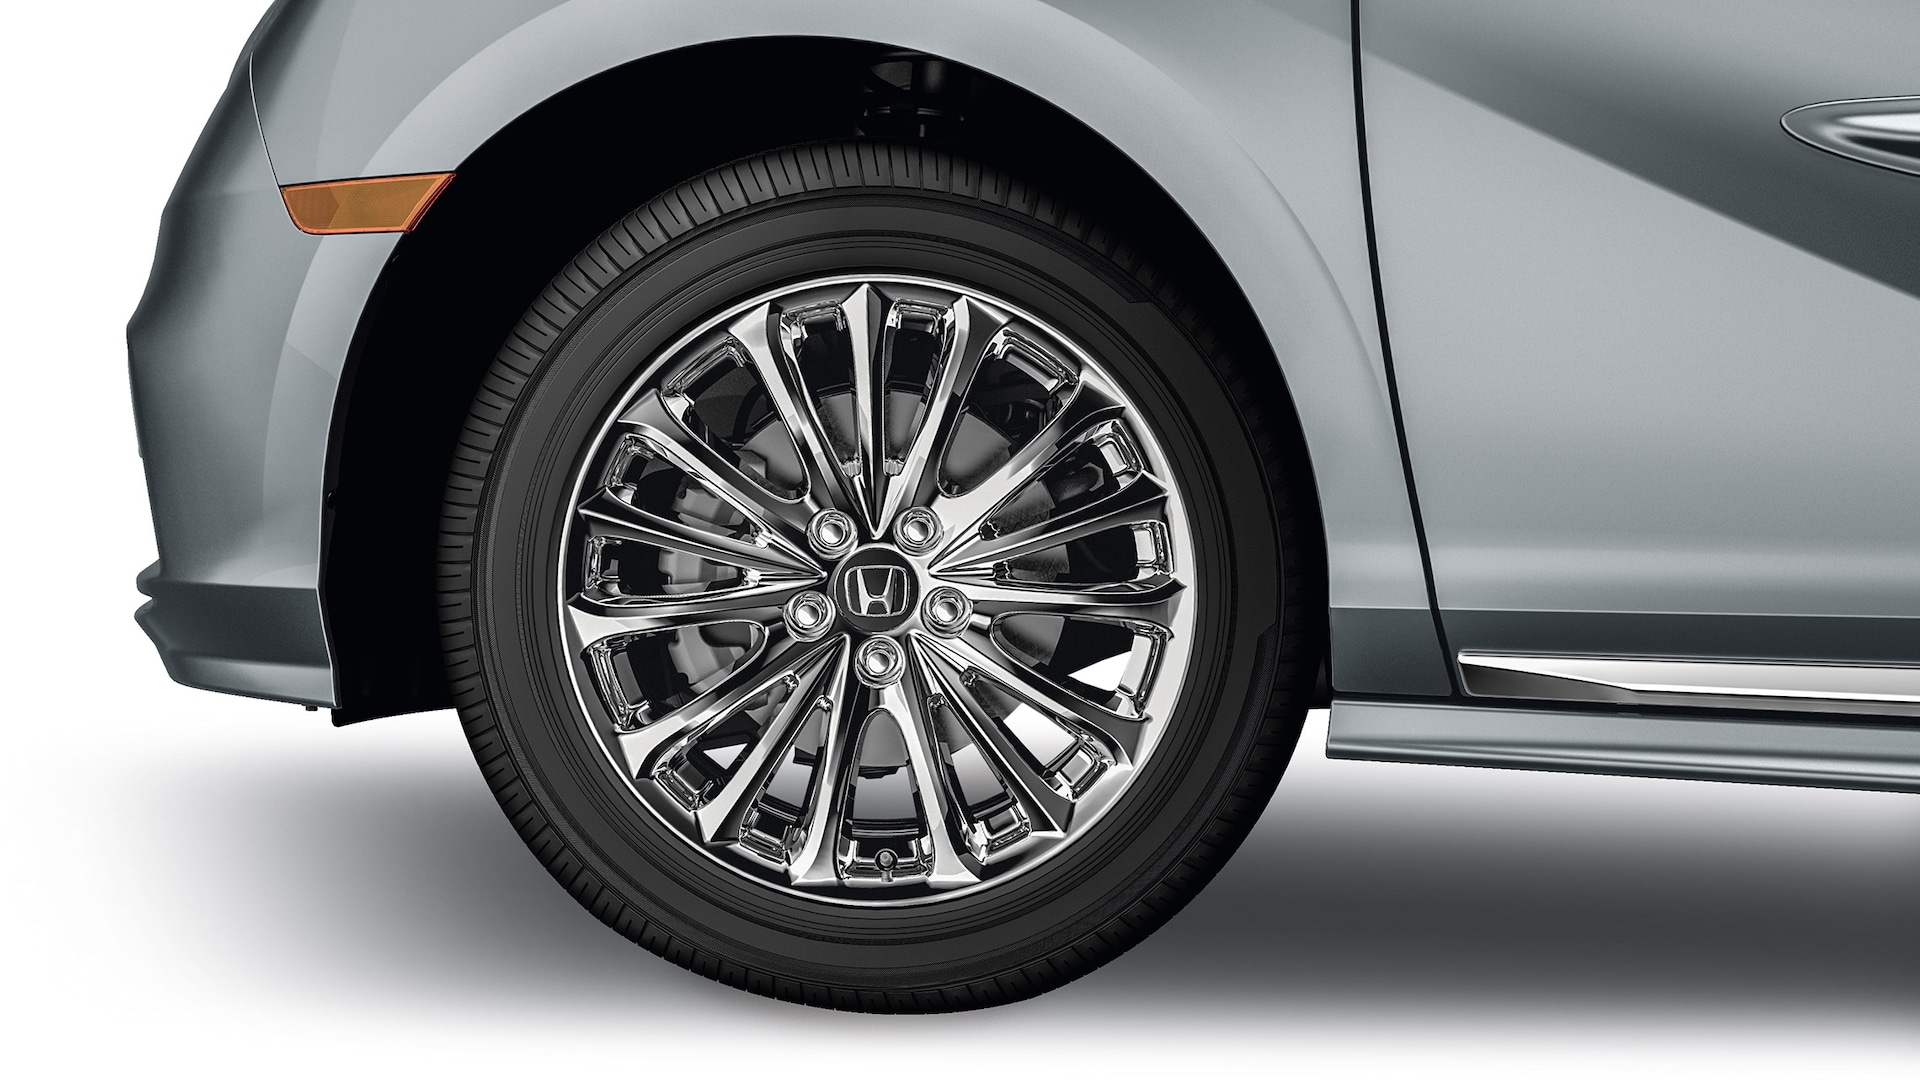 Detail of 2020 Honda Odyssey accessory 19-inch chrome alloy wheels.